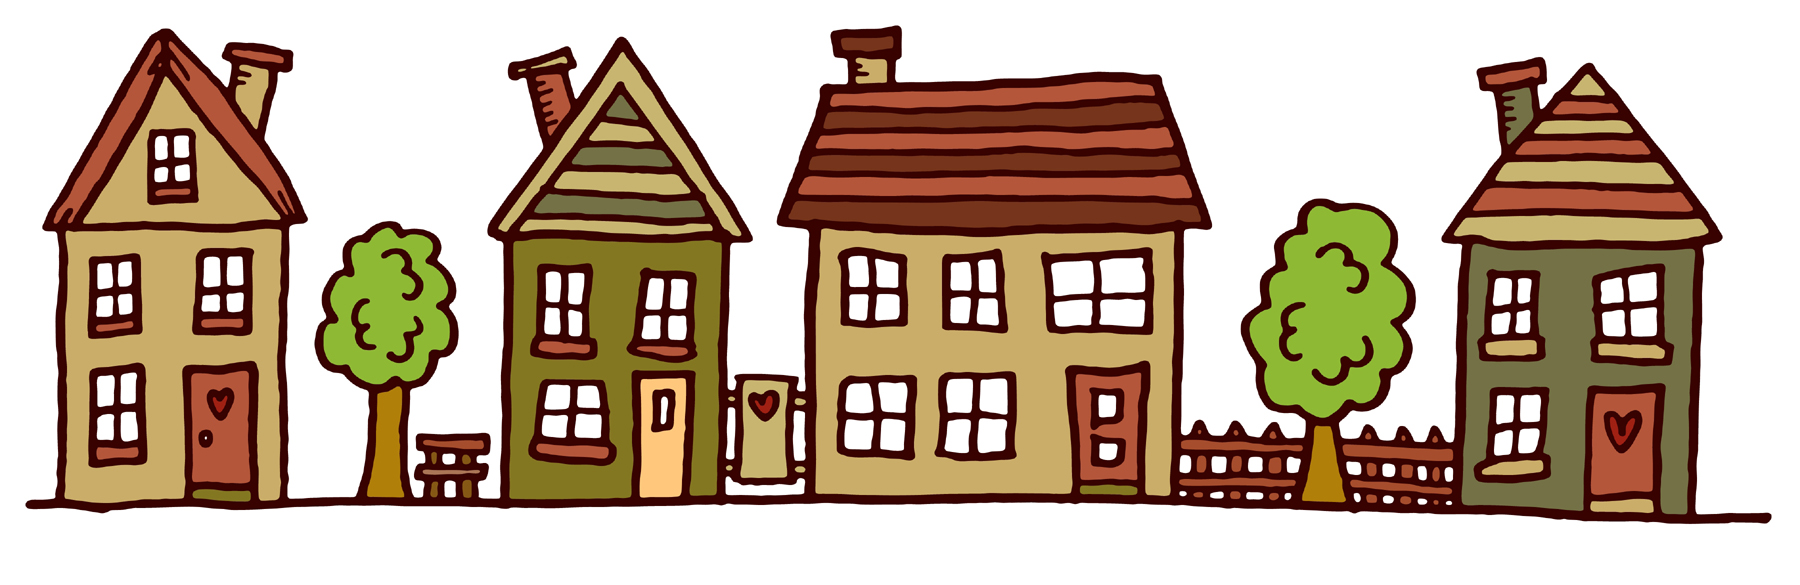 Clip Art Of Homes In A Row Clipart.